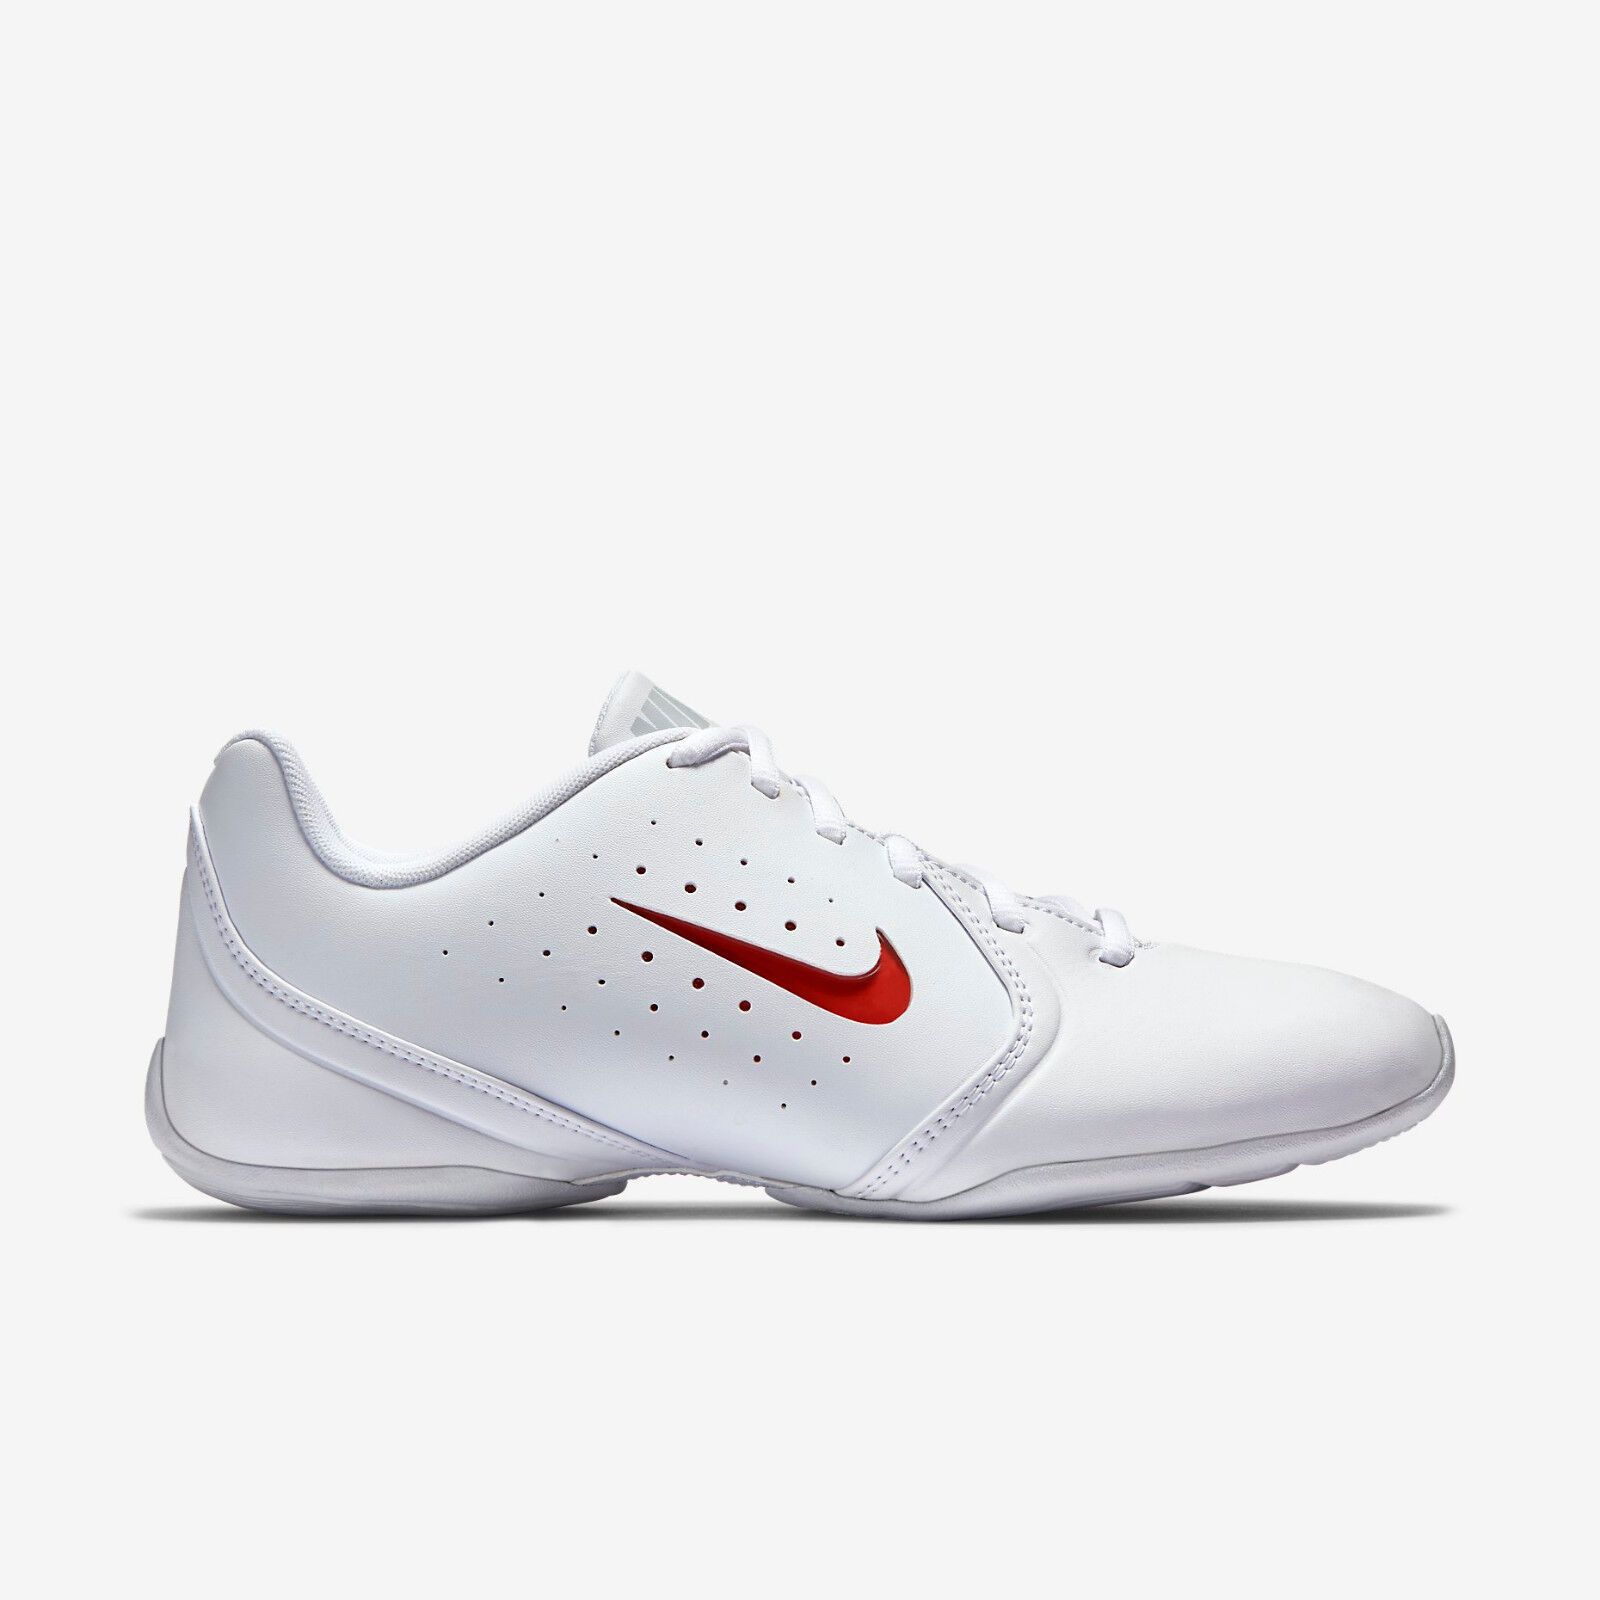 Nike Sideline III Insert White/Pure Platinum/White Special Offer